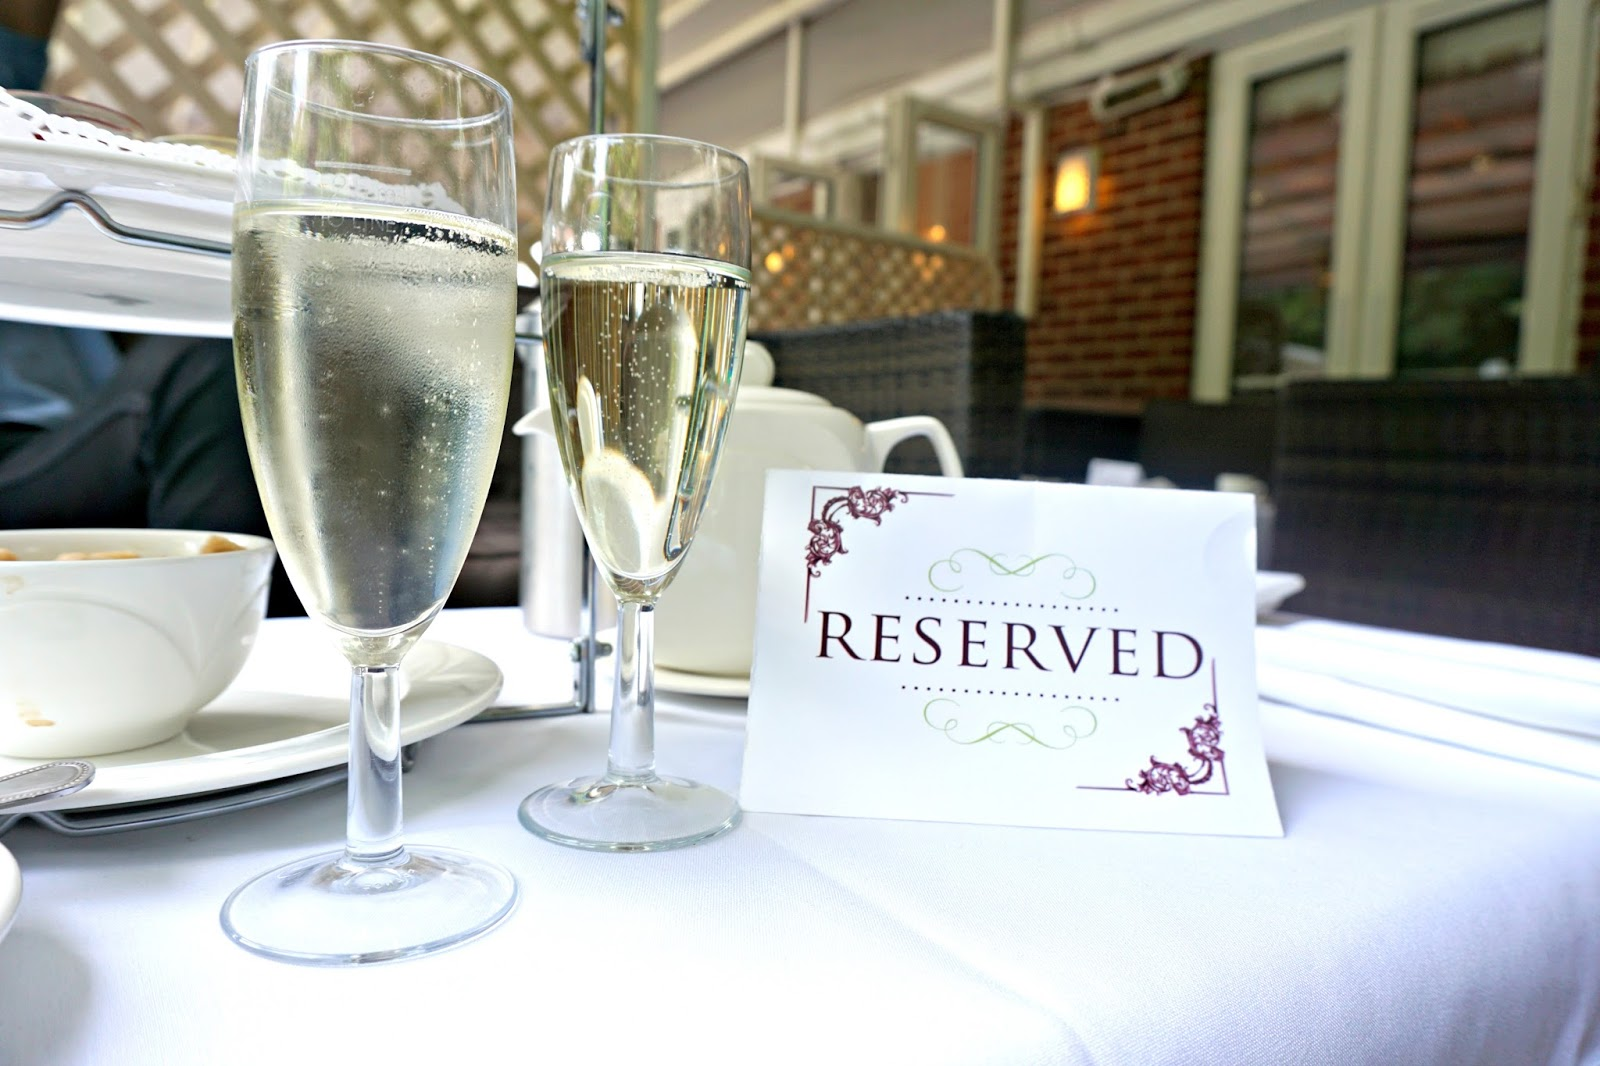 The Milford Hall Hotel Salisbury Wiltshire Stonehenge Amesbury Welcome Prosecco Blog Review